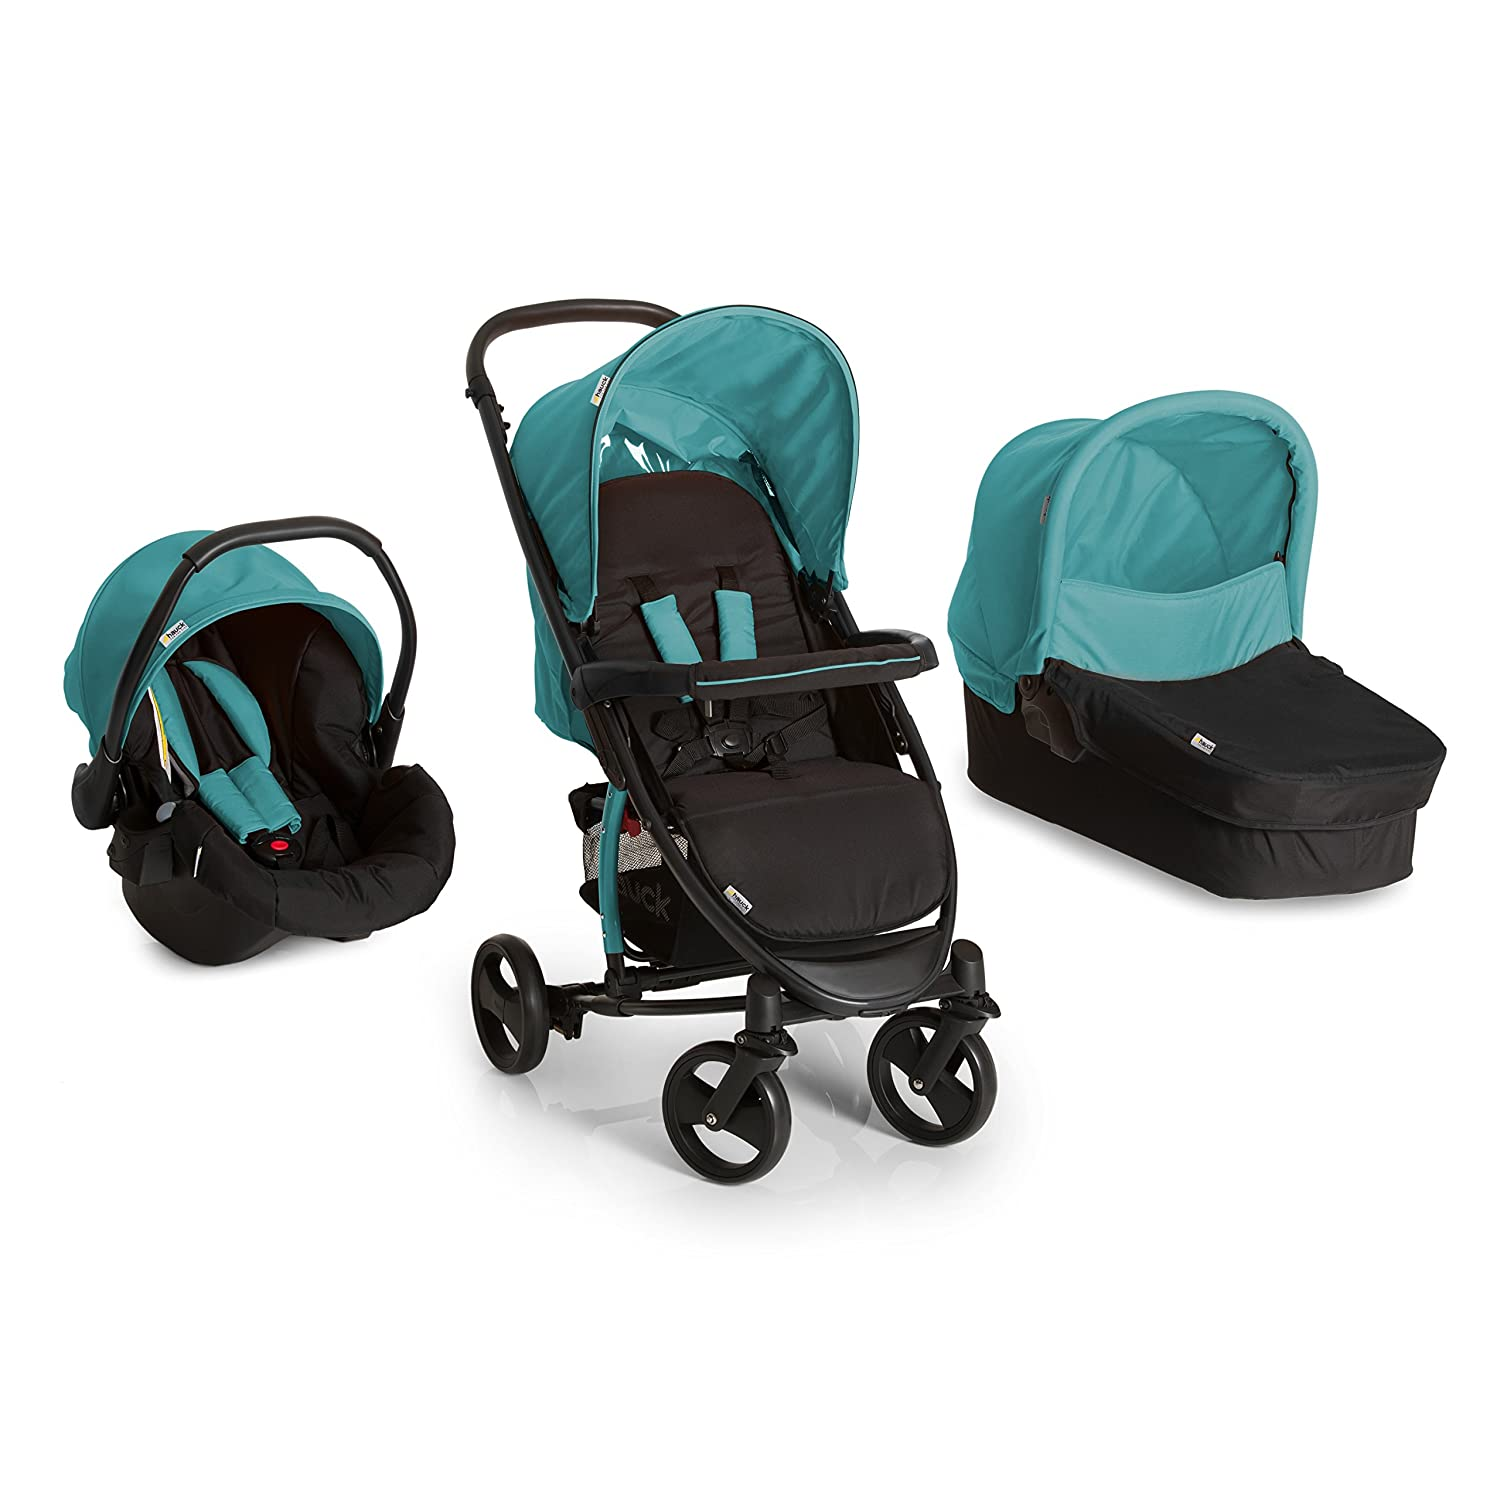 Hauck Miami 4S Trio Set Travel System